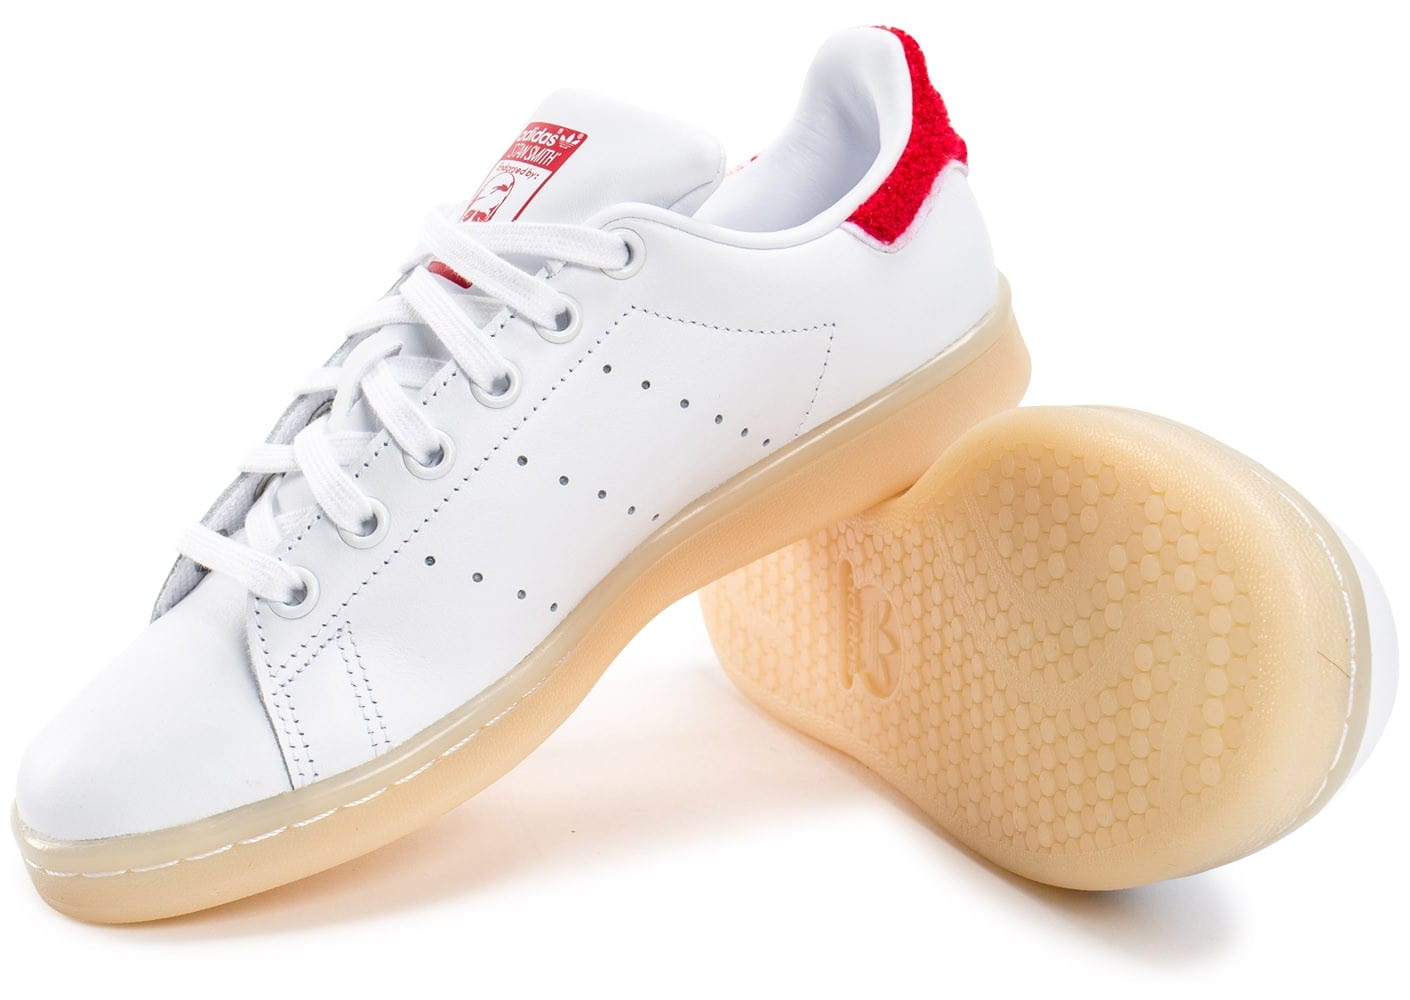 mieux aimé 06aa3 2f78f adidas Stan Smith Wool blanche et rouge - Chaussures adidas ...